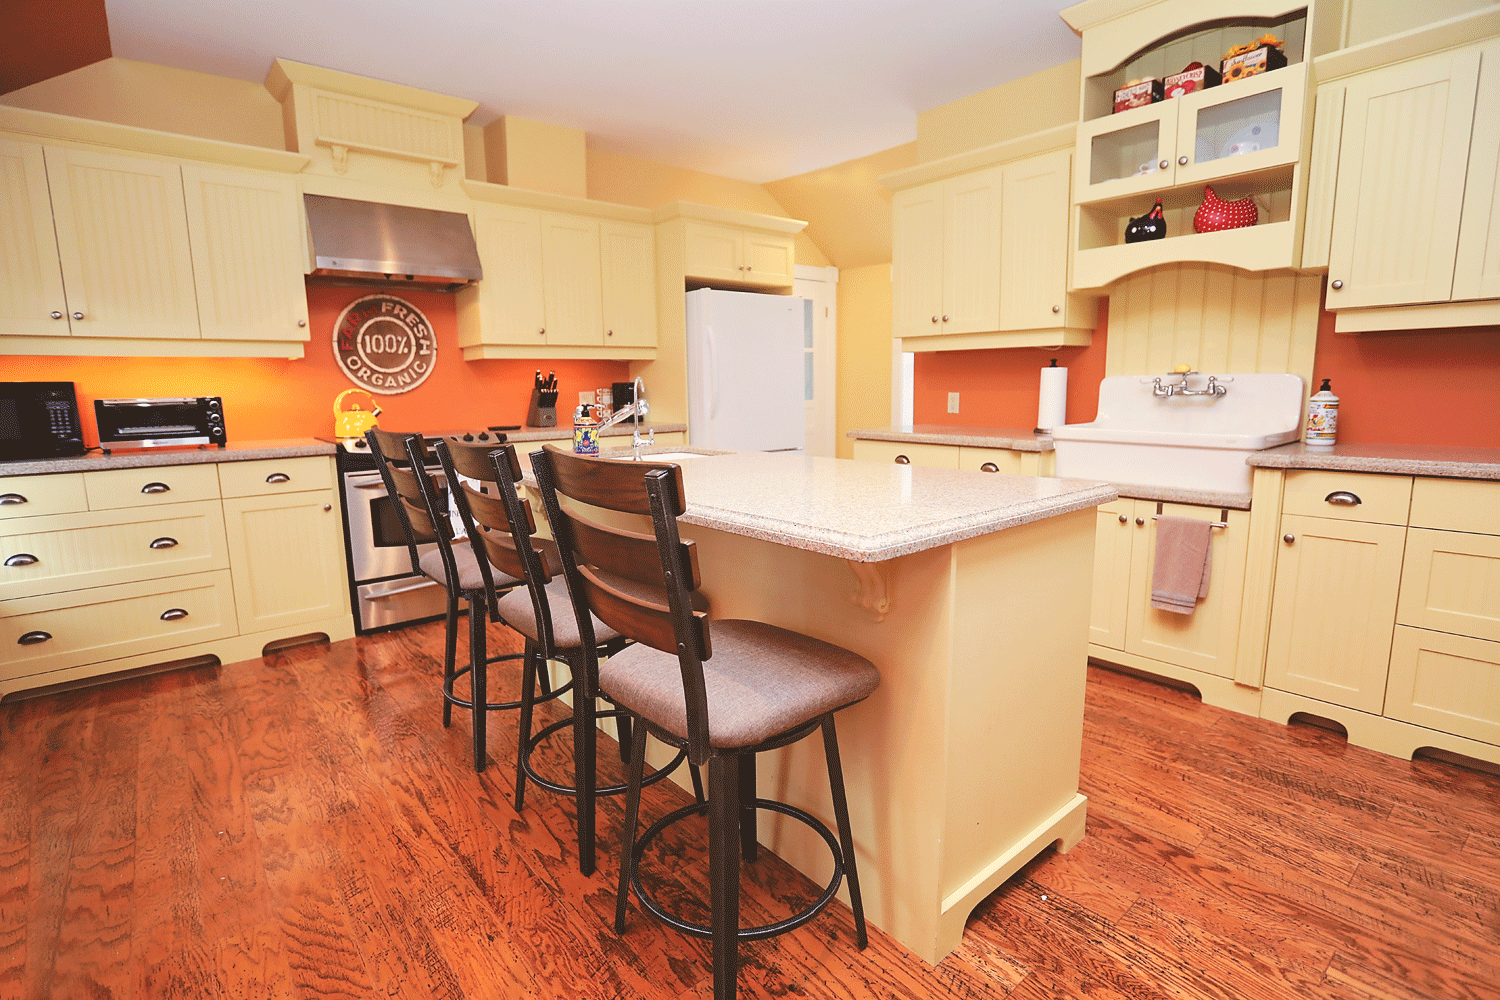 farmer's kitchen - A full kitchen, including electric range & oven, microwave, toaster oven, dishwasher, full size fridge/freezer, dishwasher, coffee maker, kettle, farm sink, island sink and a breakfast bar.